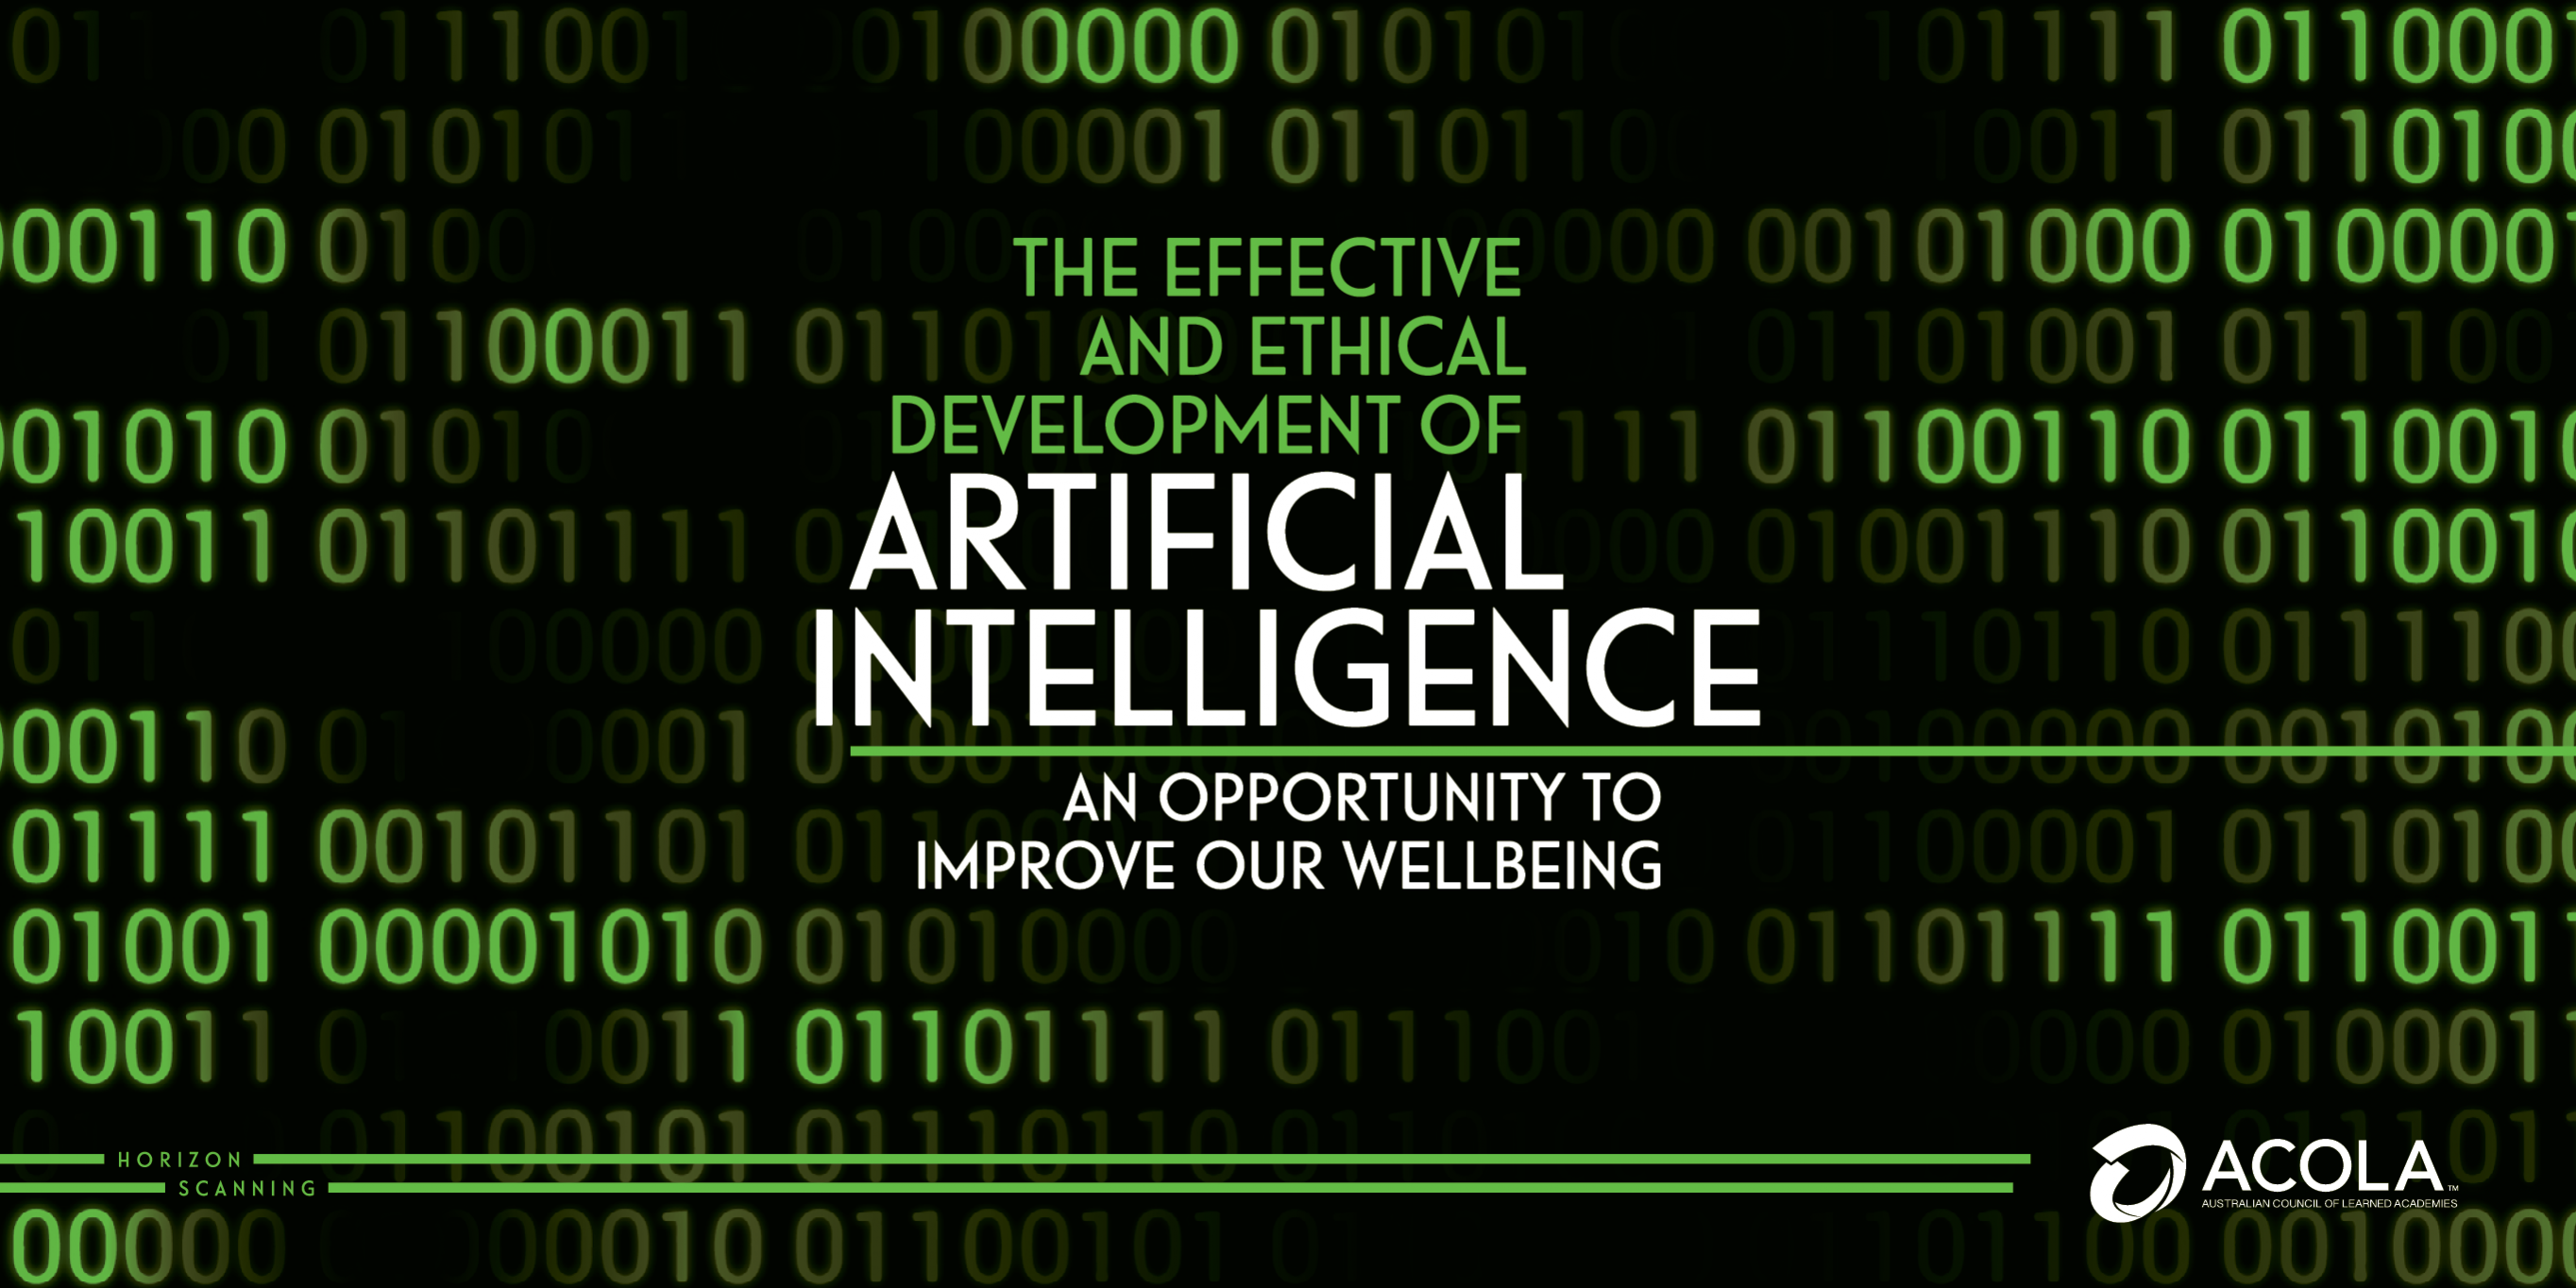 The effective and ethical development of artificial